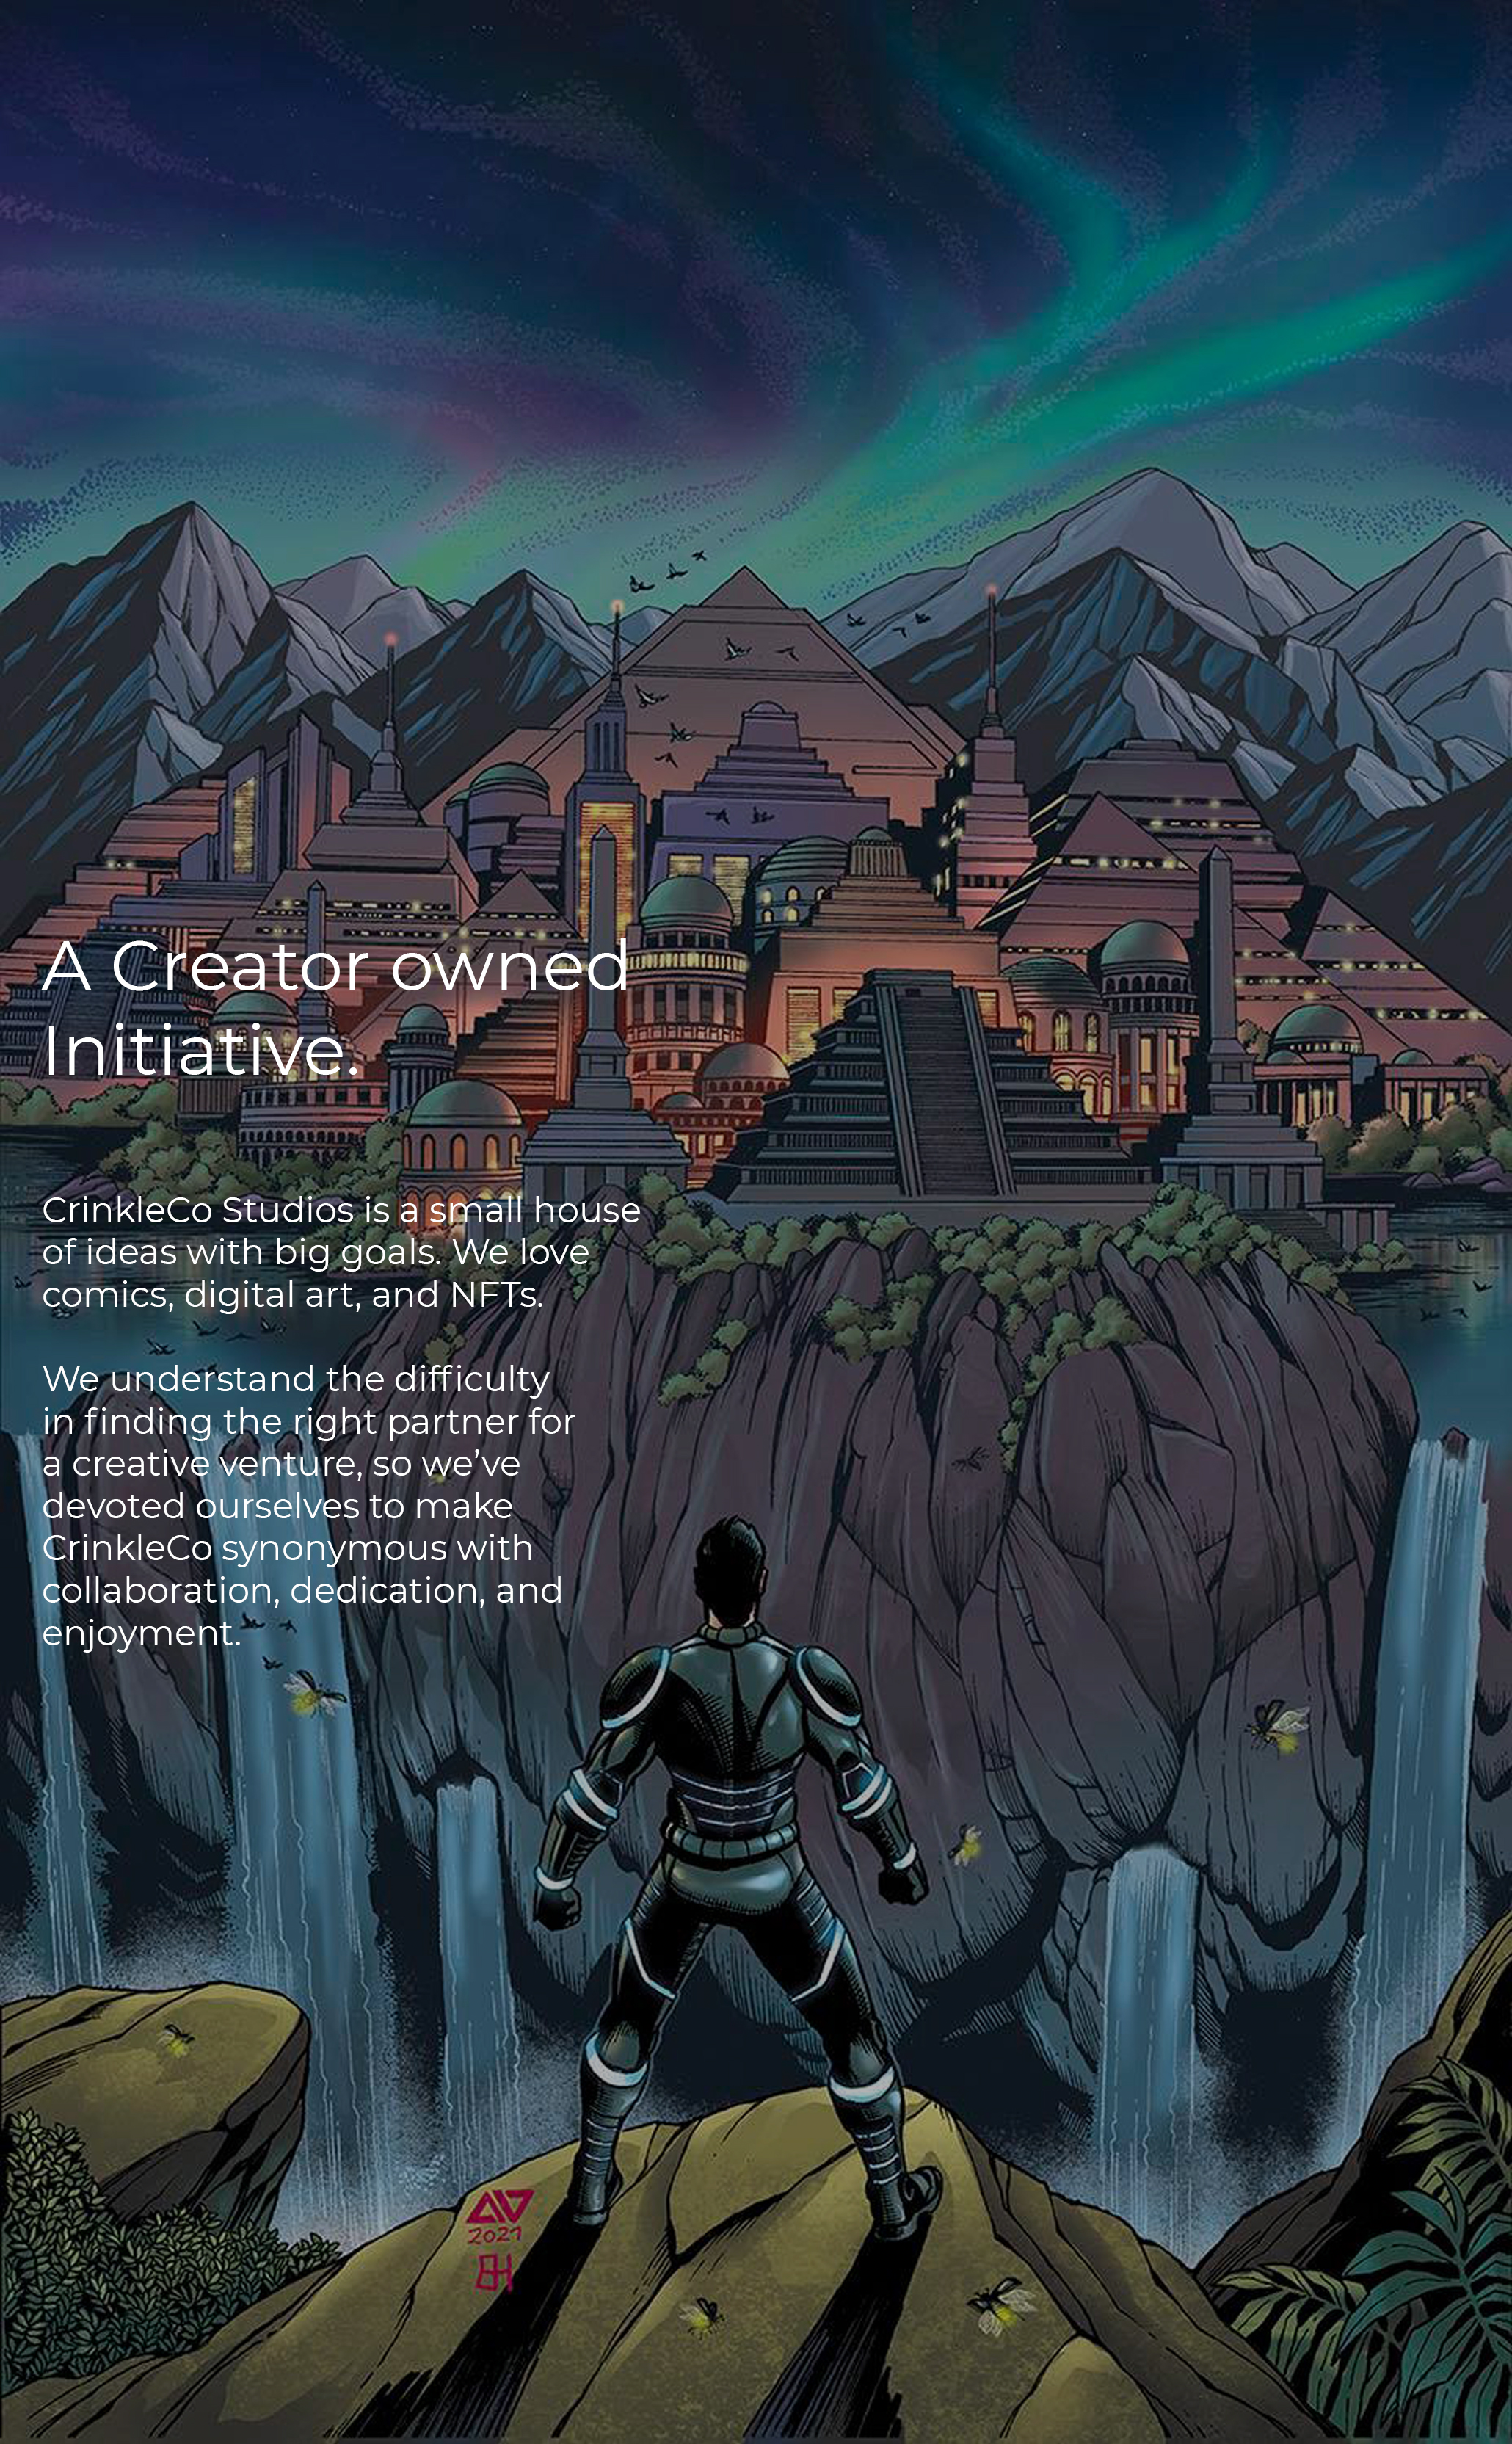 """Preview image of Chagra Chronicles comic book. Chagra is facing his old home, the ancient city of Sebonia.  Text says, """"CrinkleCo Studios is a small house of ideas with big goals. We love comics, digital art, and NFTs.We understand the difficulty in finding the right partner for a creative venture, so we've devoted ourselves to make CrinkleCo synonymous with collaboration, dedication, and enjoyment."""""""